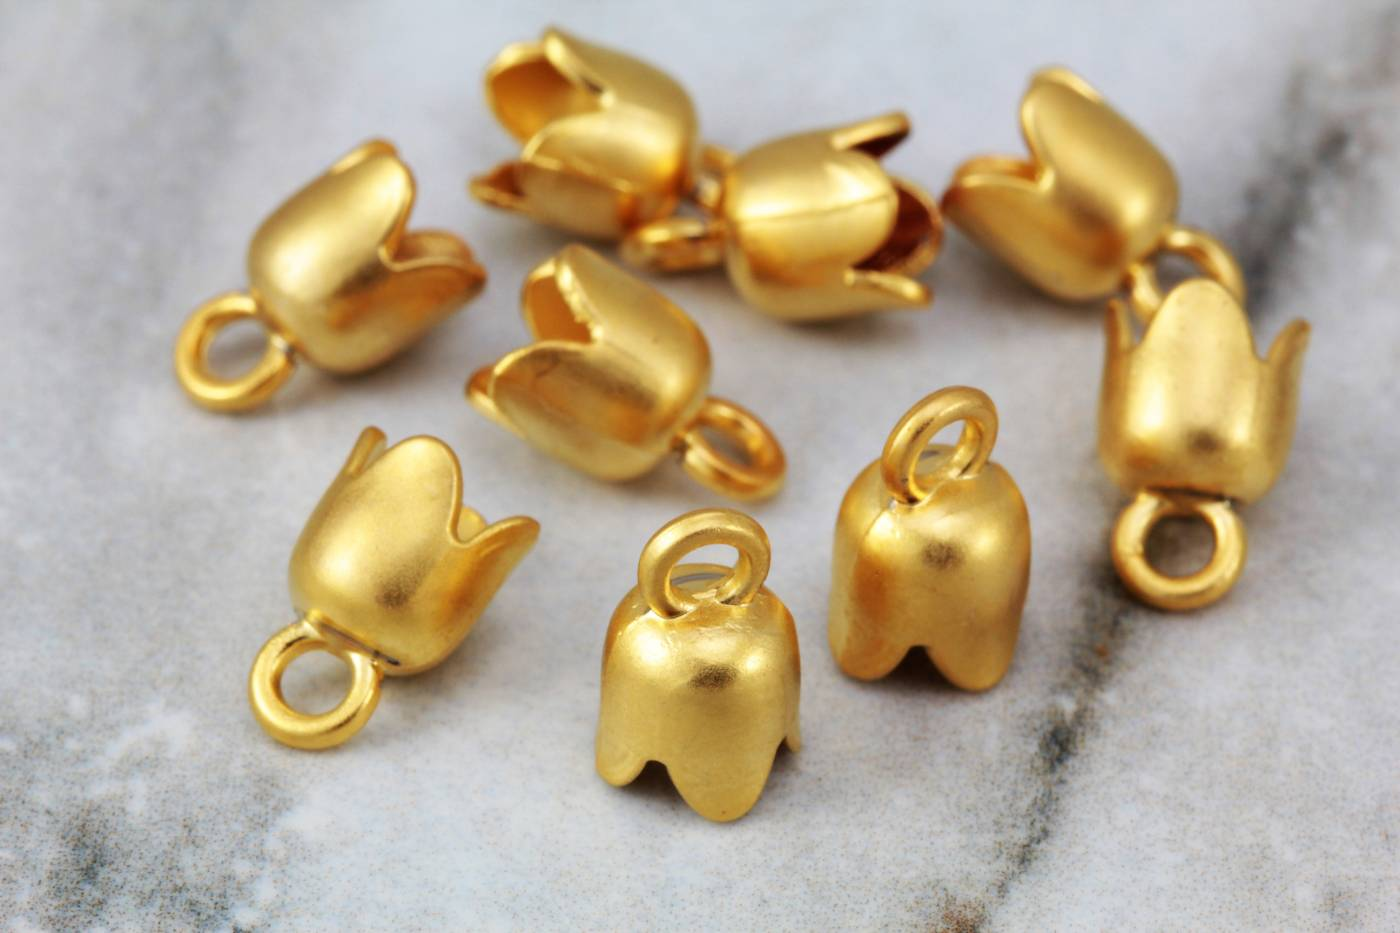 gold-plated-tulip-shape-end-caps.jpg